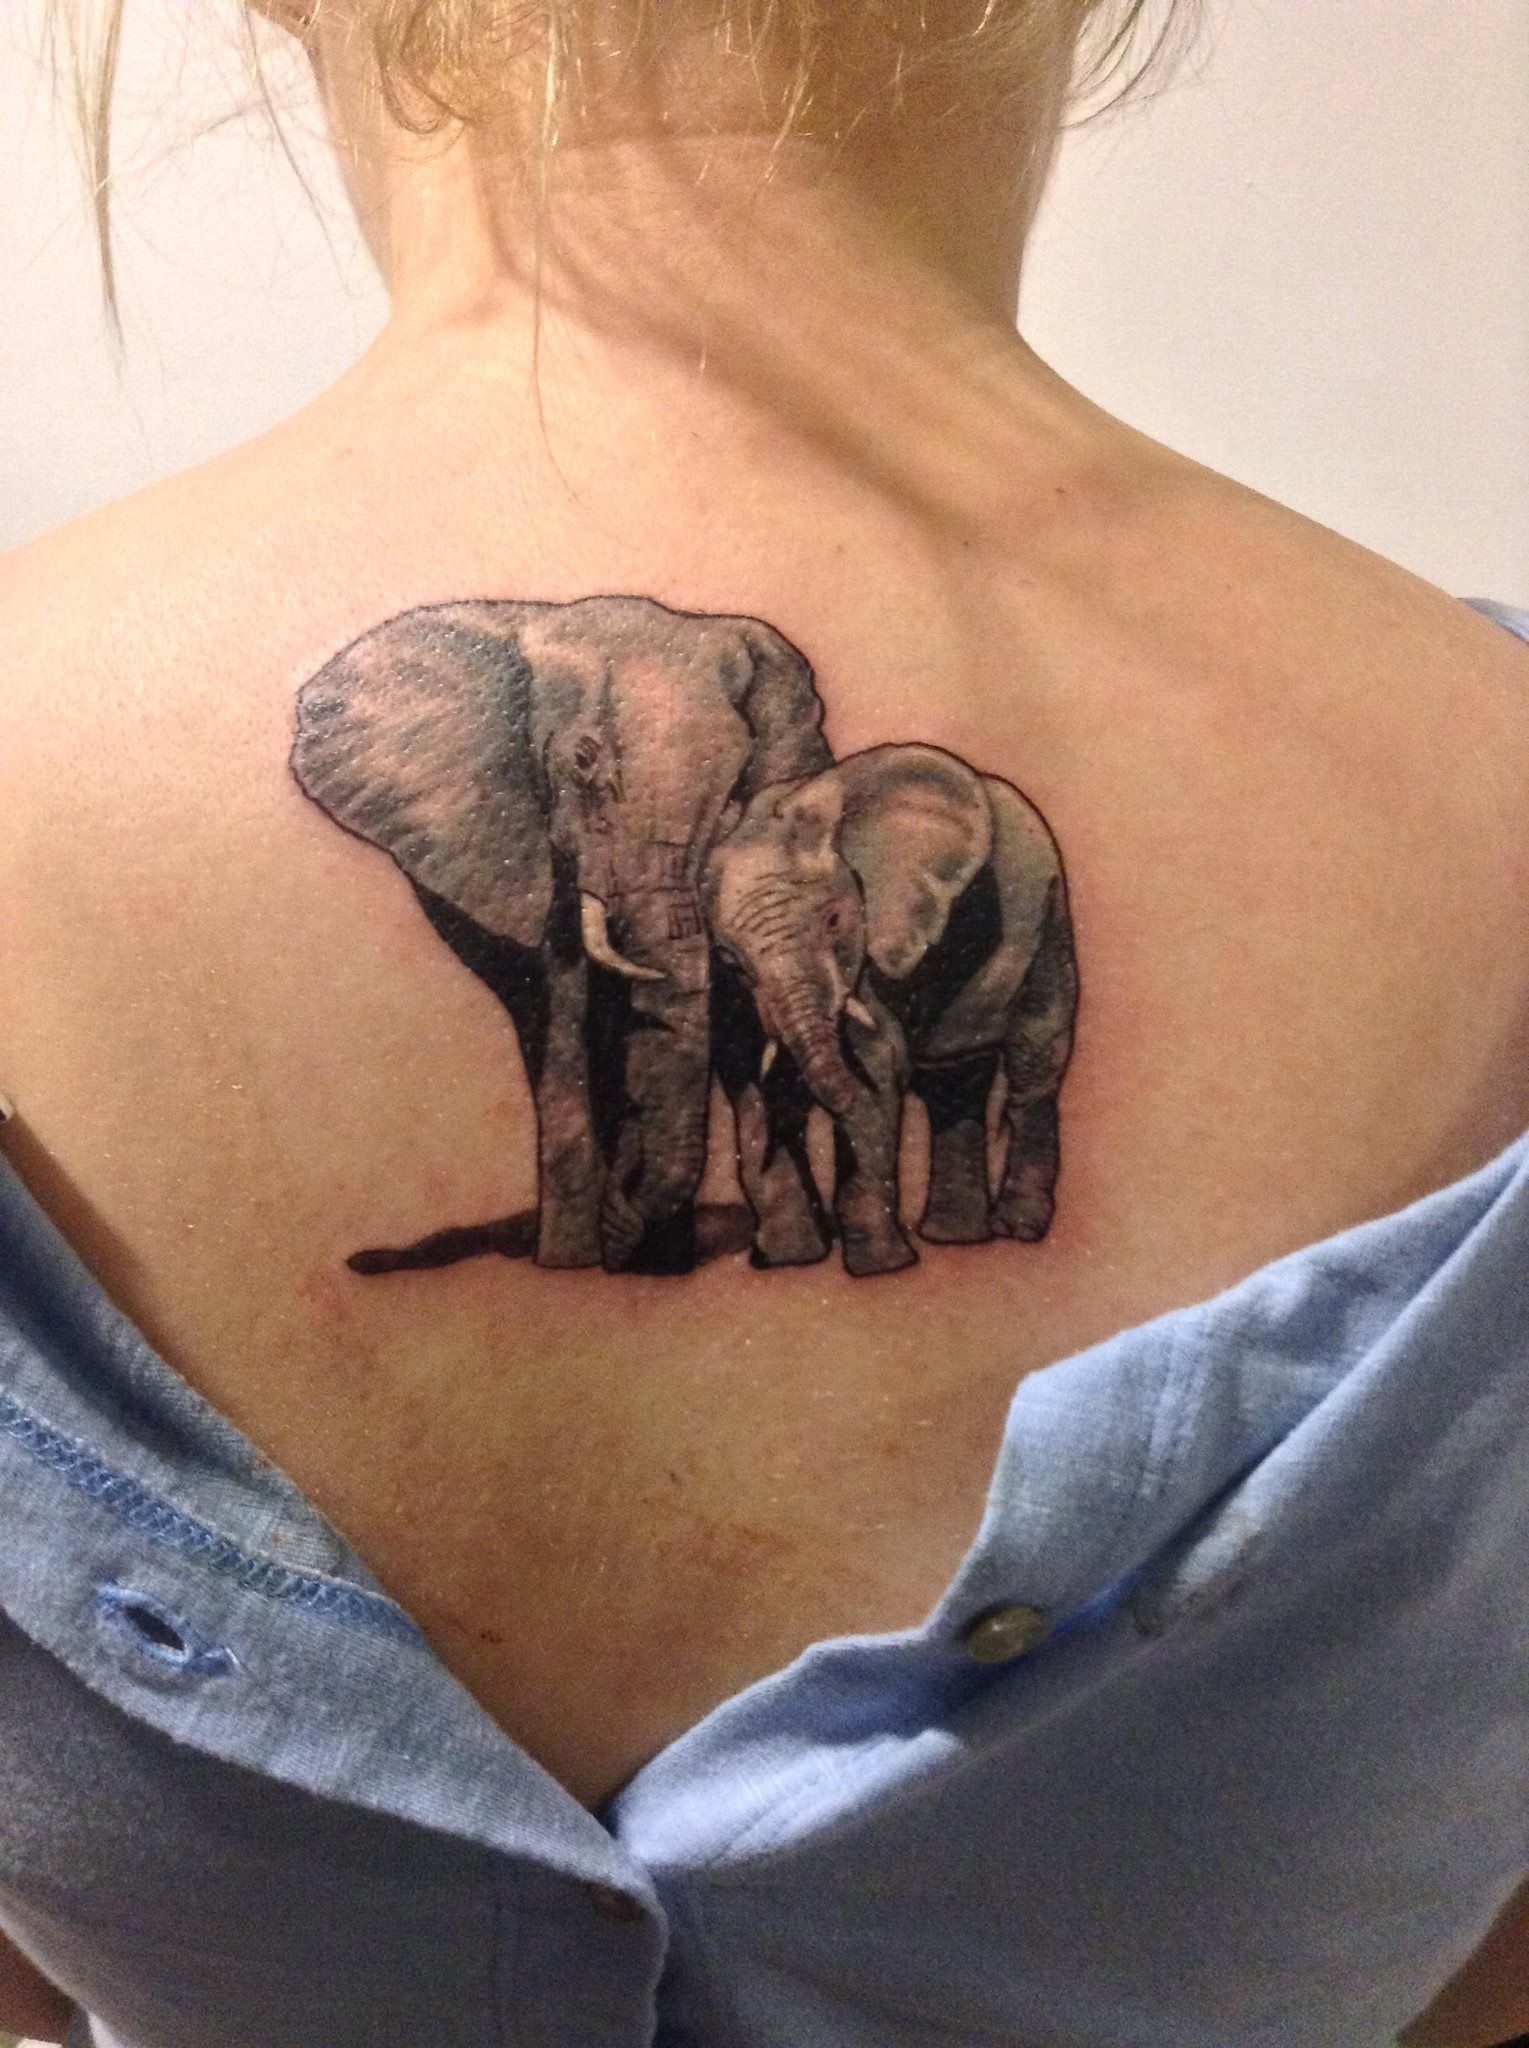 d10a3e5f8d2b0 Image result for african elephant mom and baby tattoo | Tattoos ...